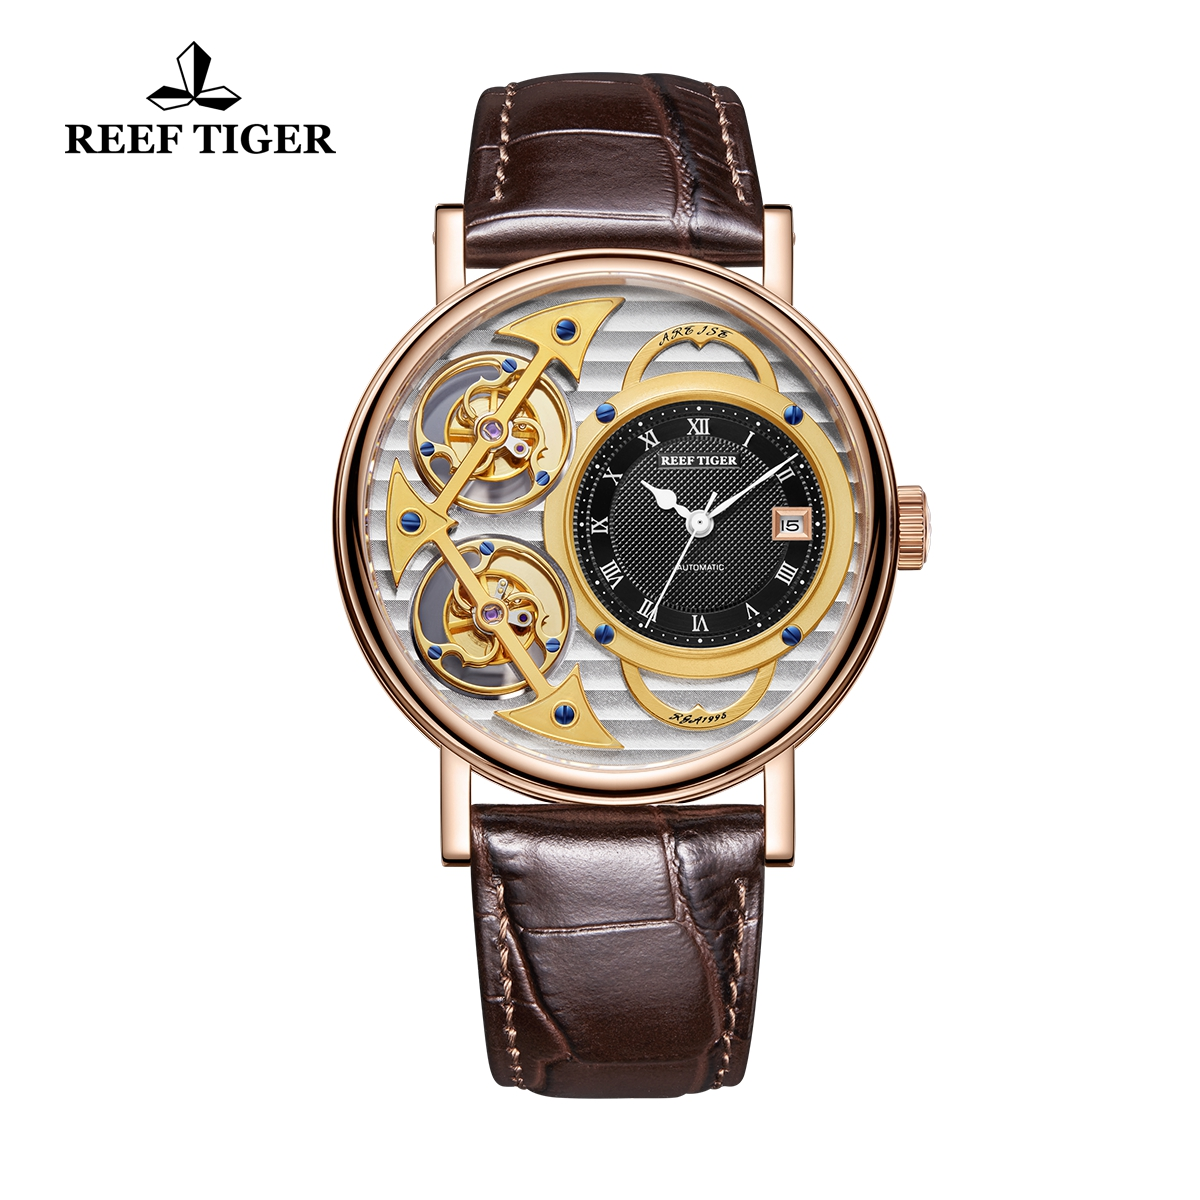 Reef Tiger Artist Magician Luxury Men's Rose Gold Watches Leather Strap Automatic Watch With Date RGA1995-PSSB